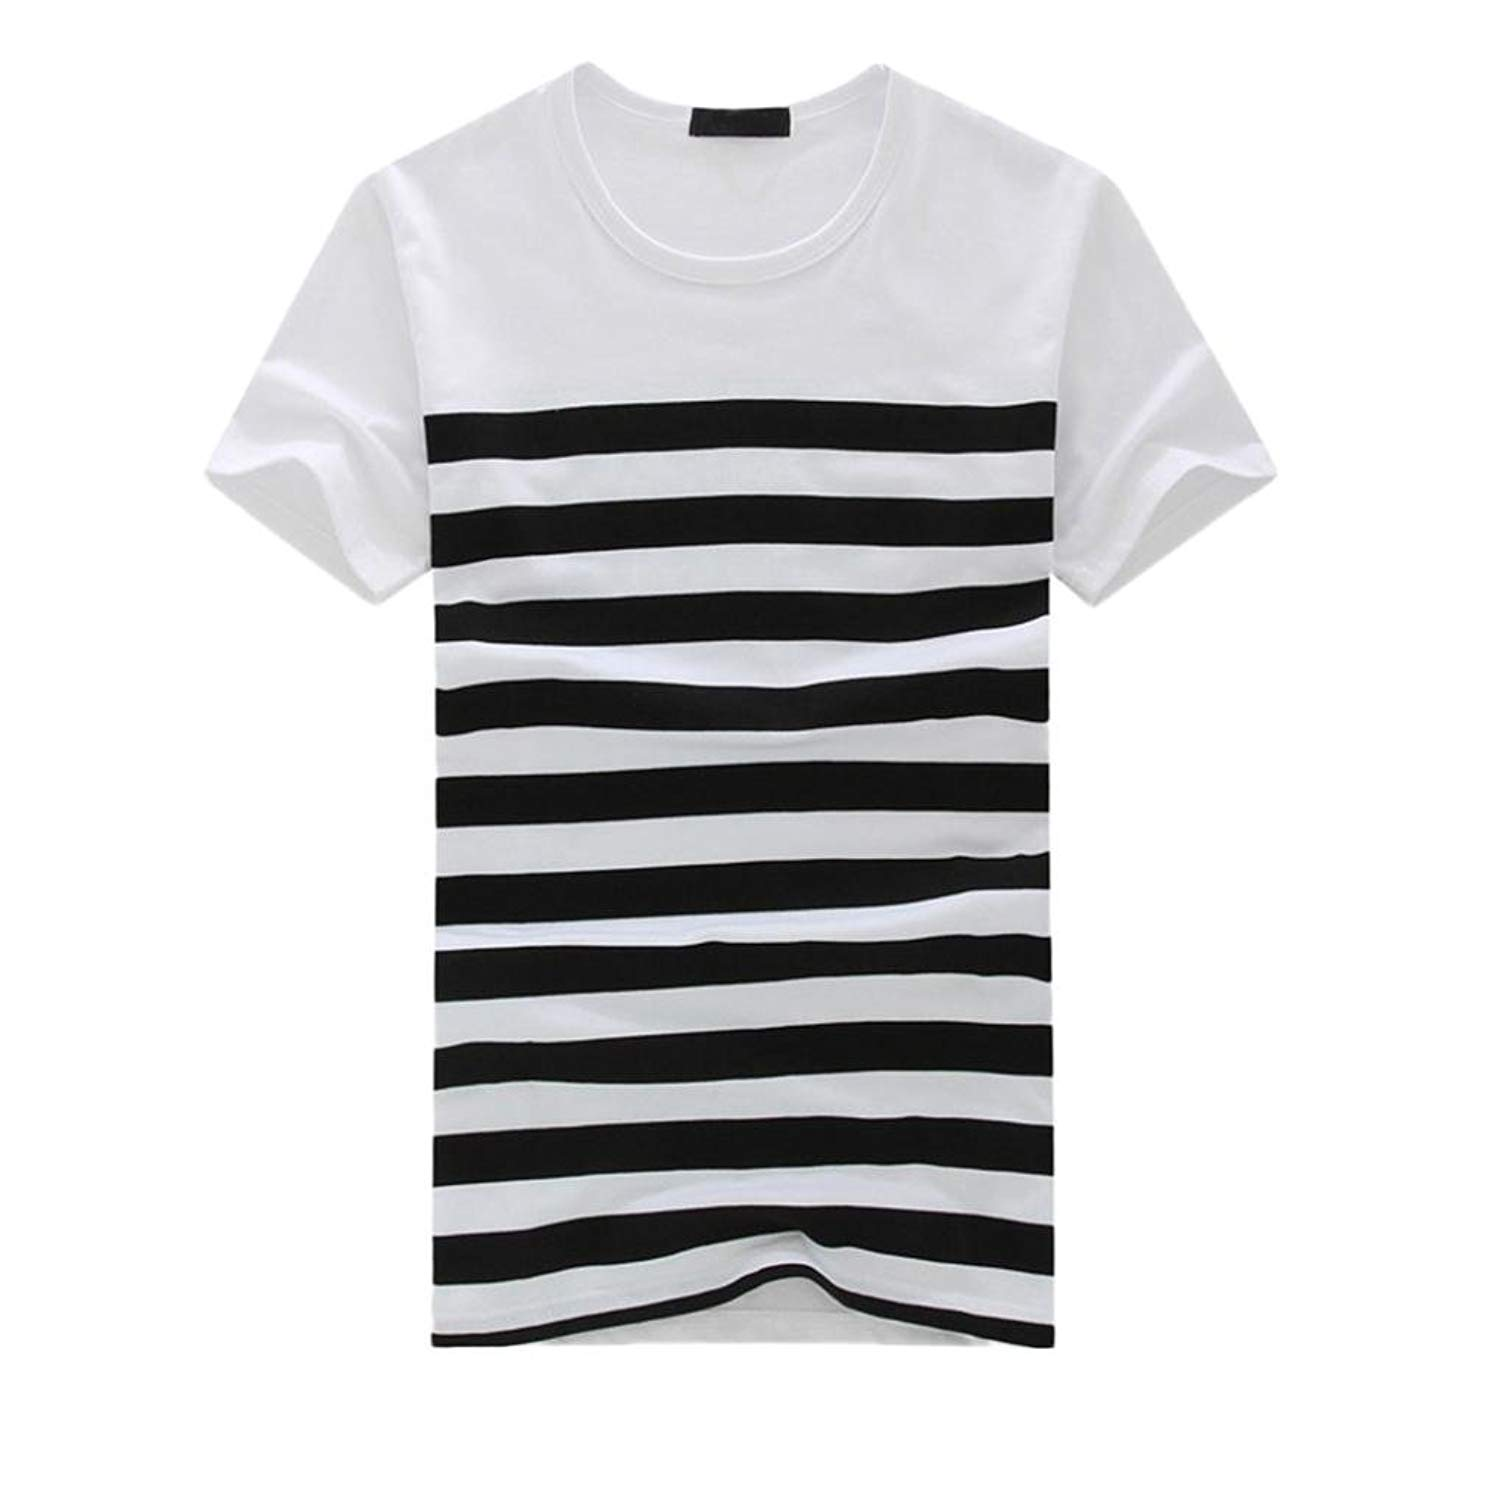 Challyhope Mens T-Shirt, Fashion Boys Summer Short Sleeve Tops Stripe Contrast Color Stripe Splice Casual Tees